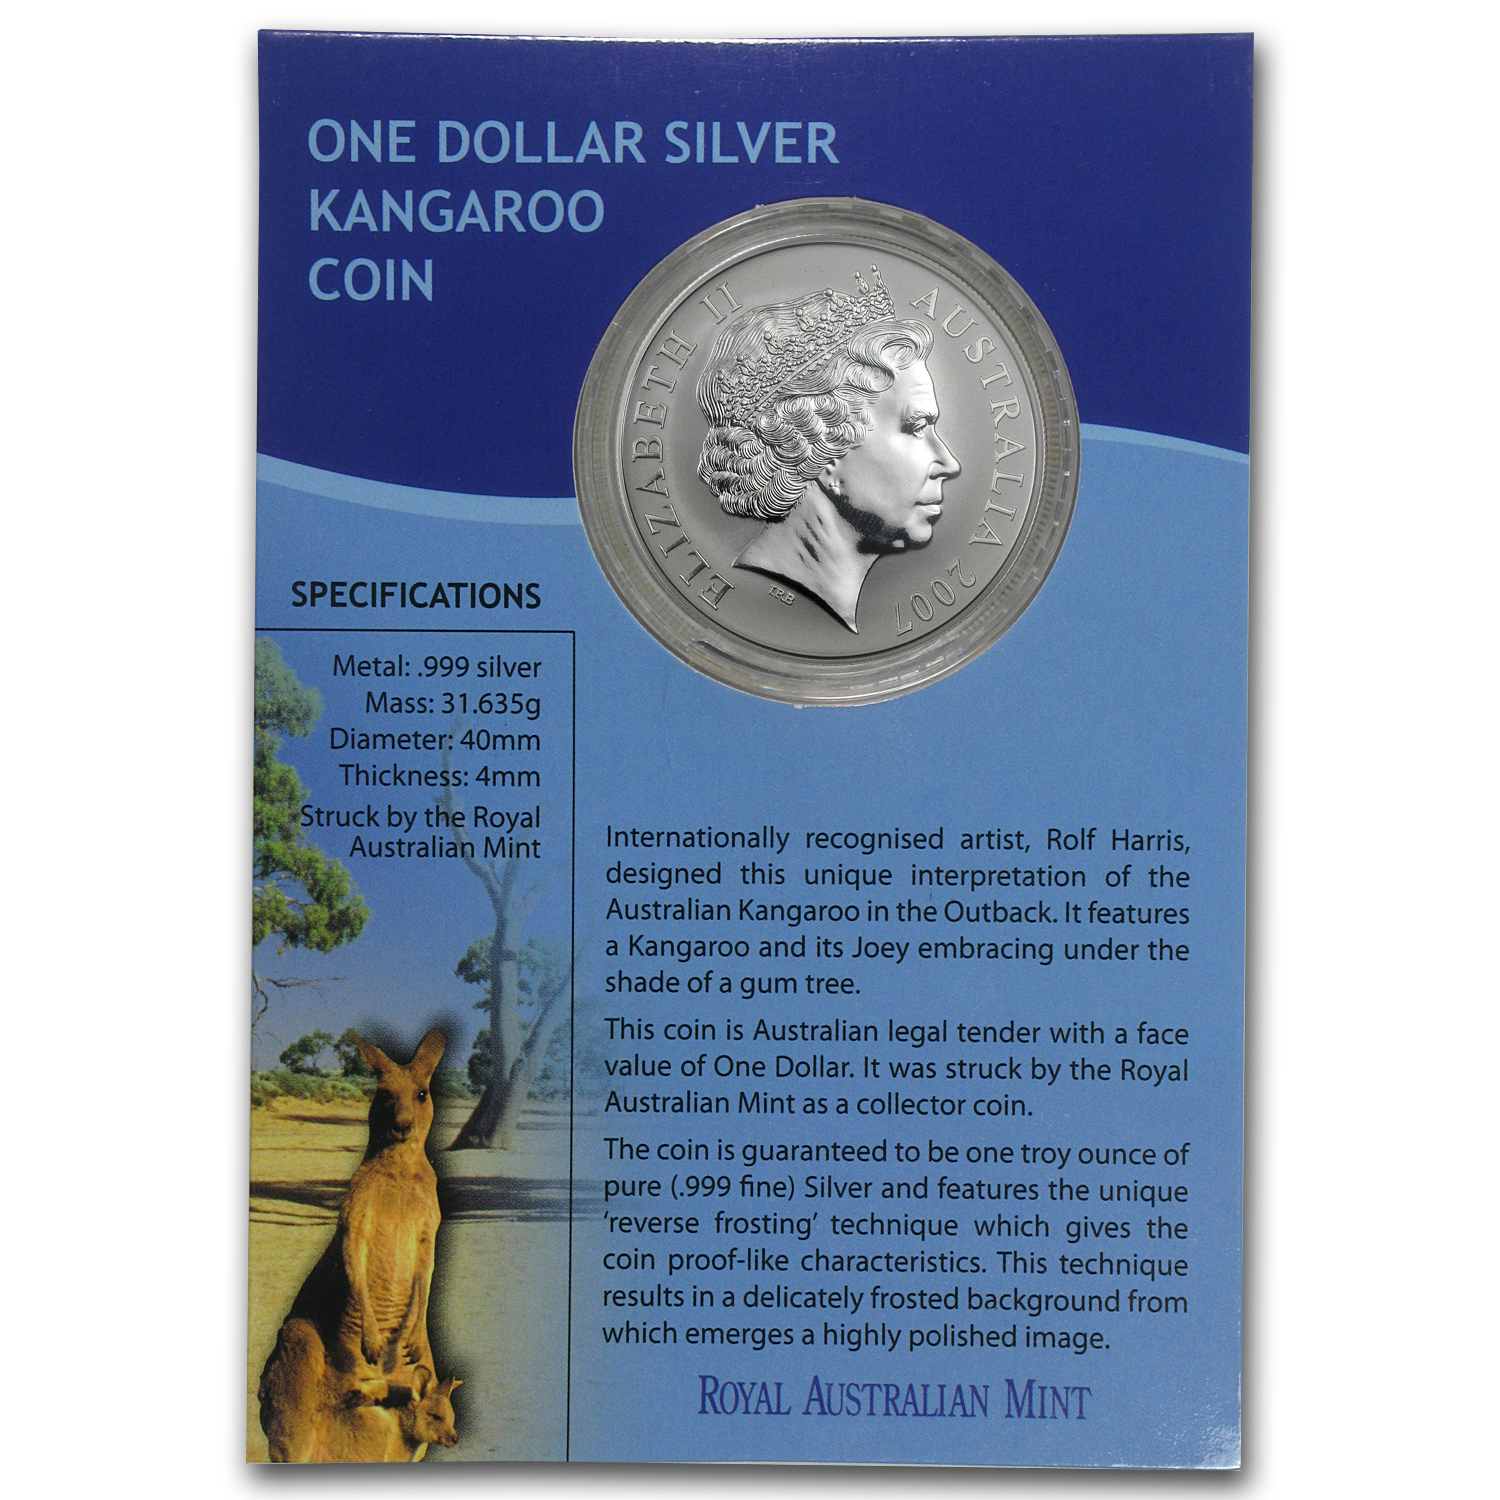 2007 1 oz Australian Silver Kangaroo (In Display Card)